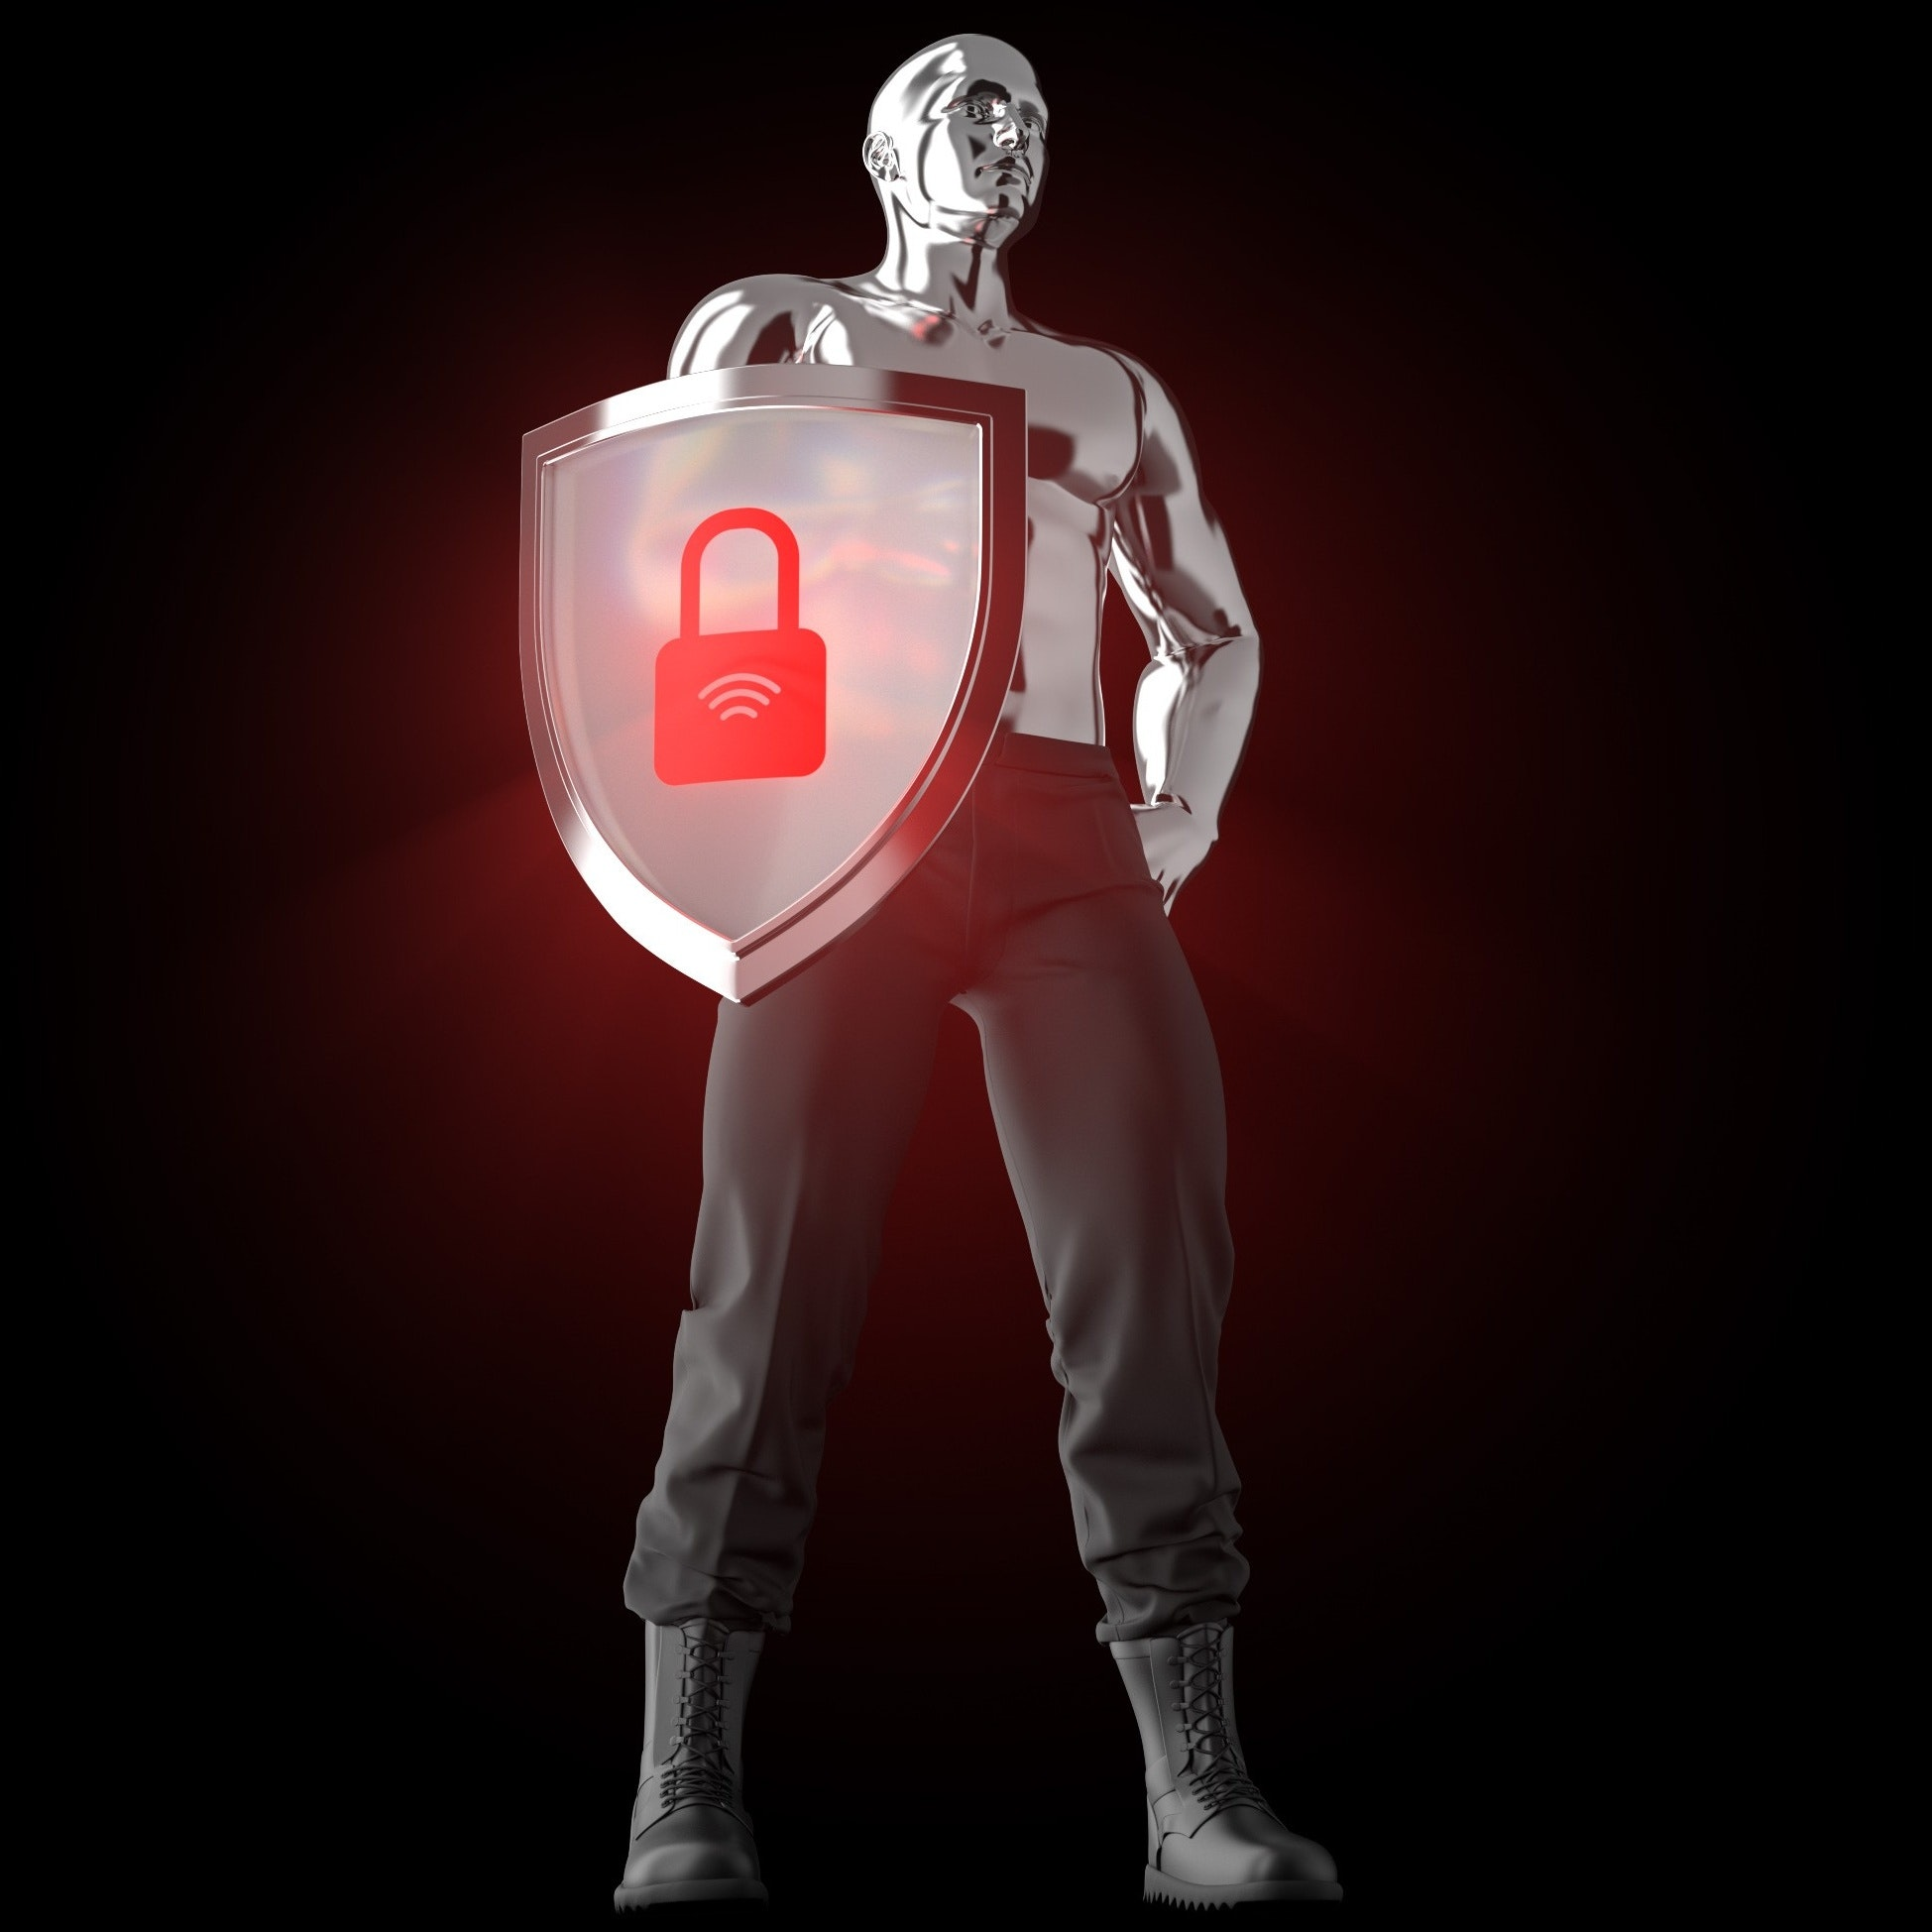 A 3D model of a steel man with a shield